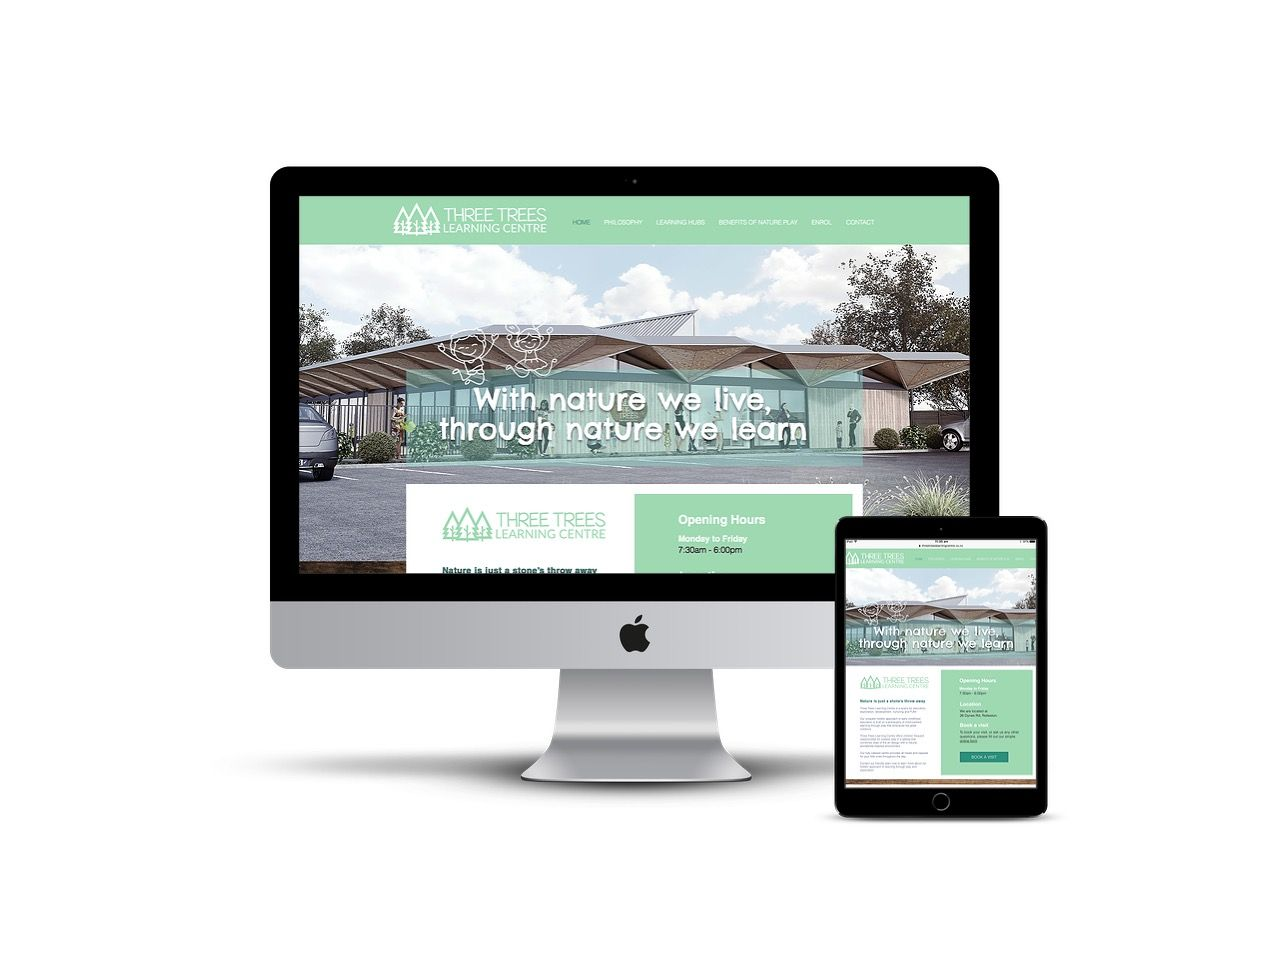 Website Webdesign Webdesignnz Www Threetreeslearningcentre Co Nz Designed By The Team At Market My Company Web Design Marketing Web Design Marketing